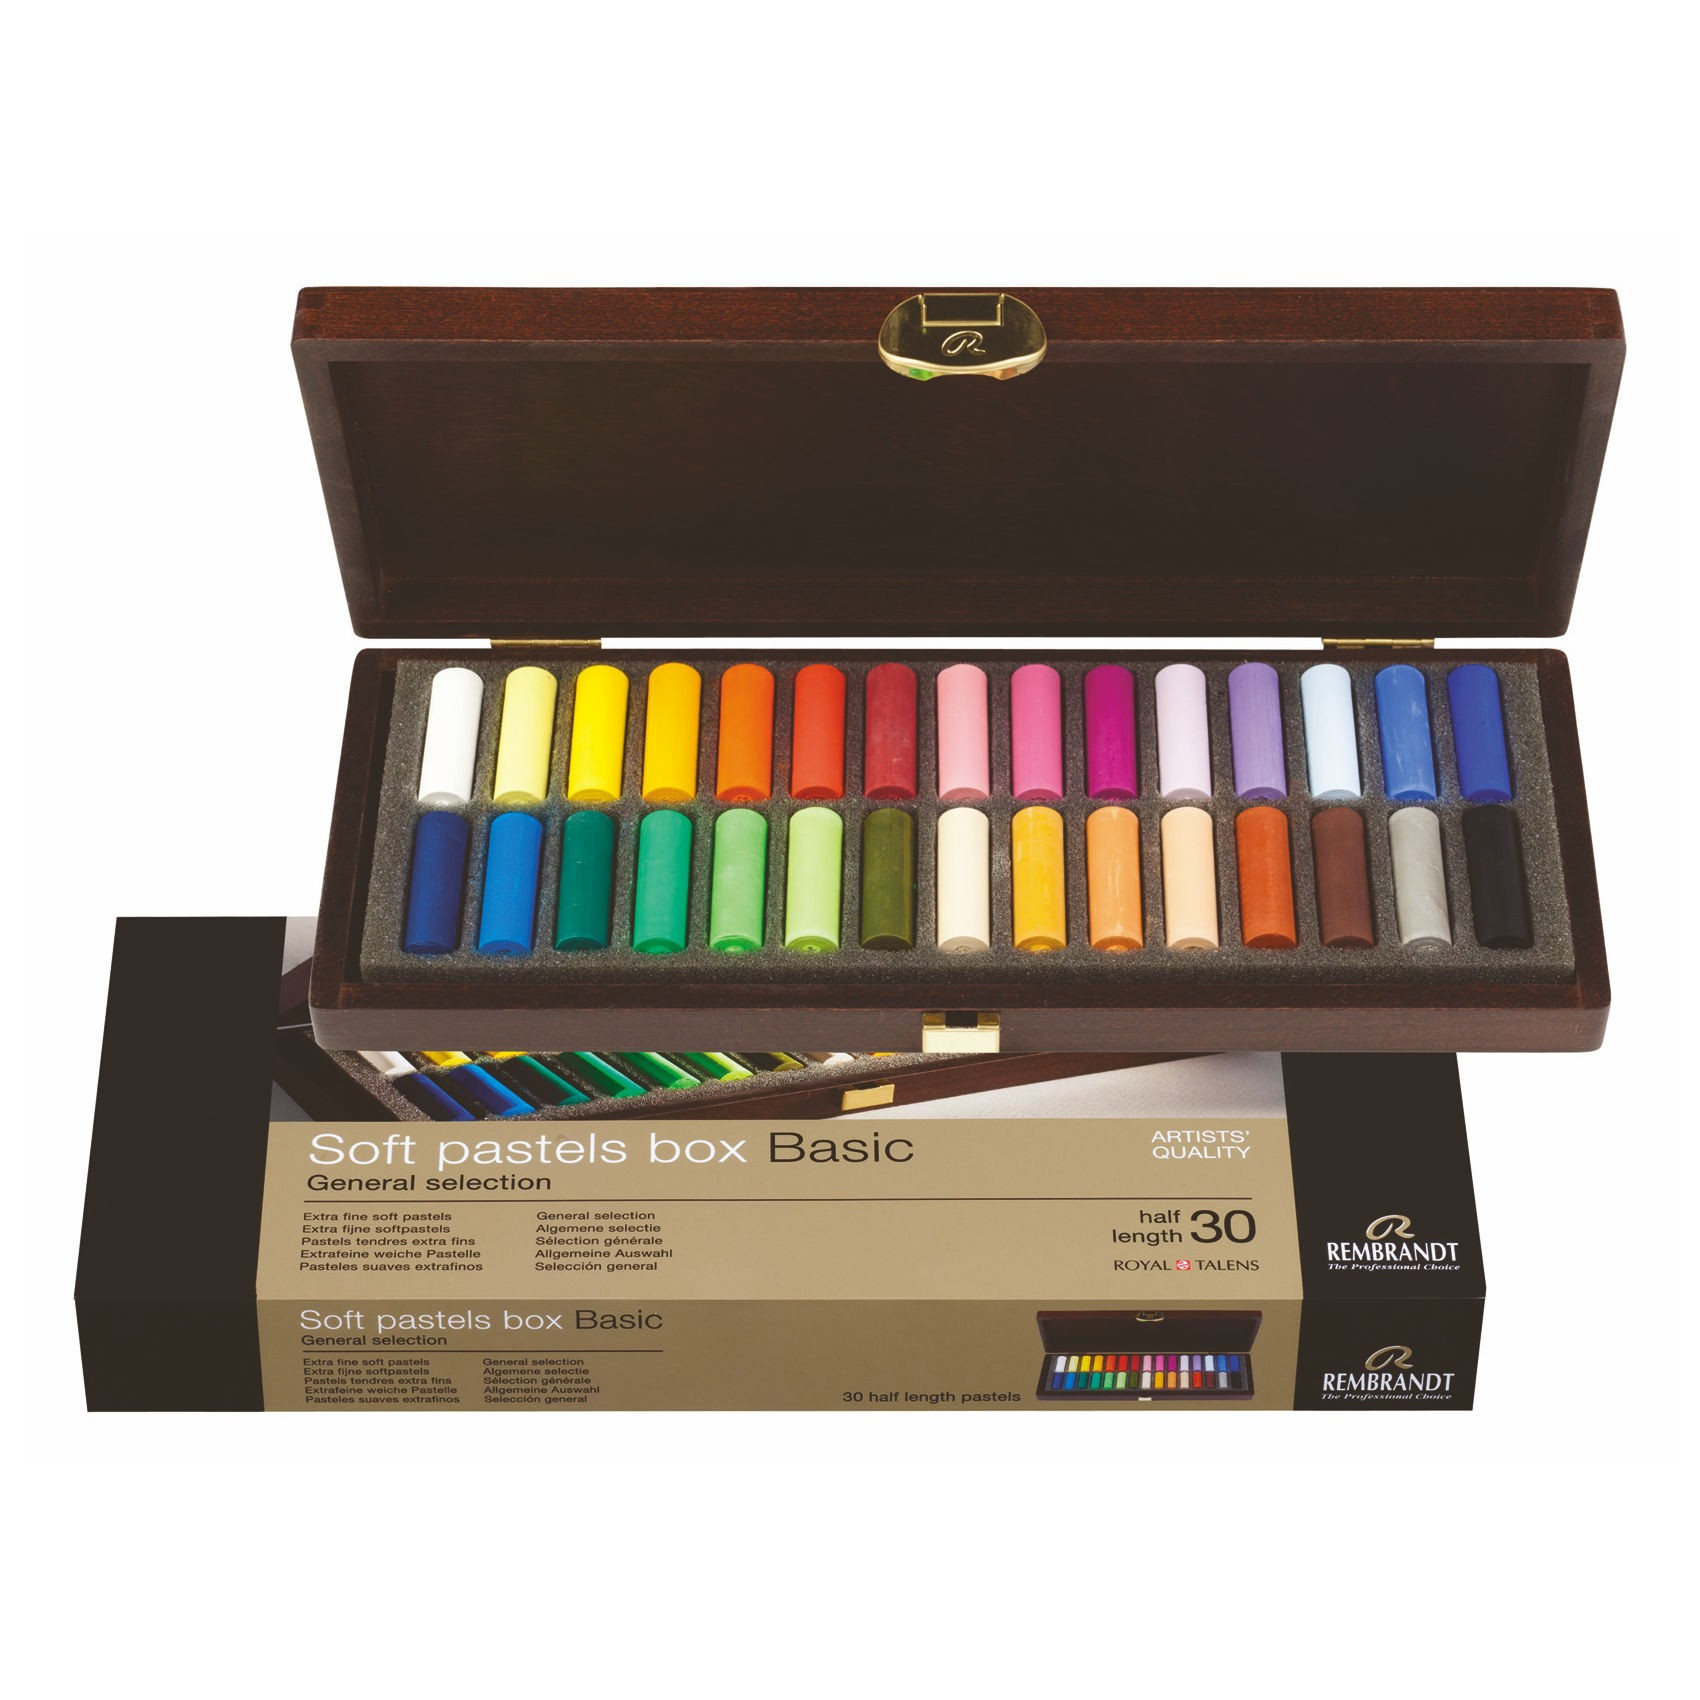 Royal Talens Rembrandts off pastels box set general selection